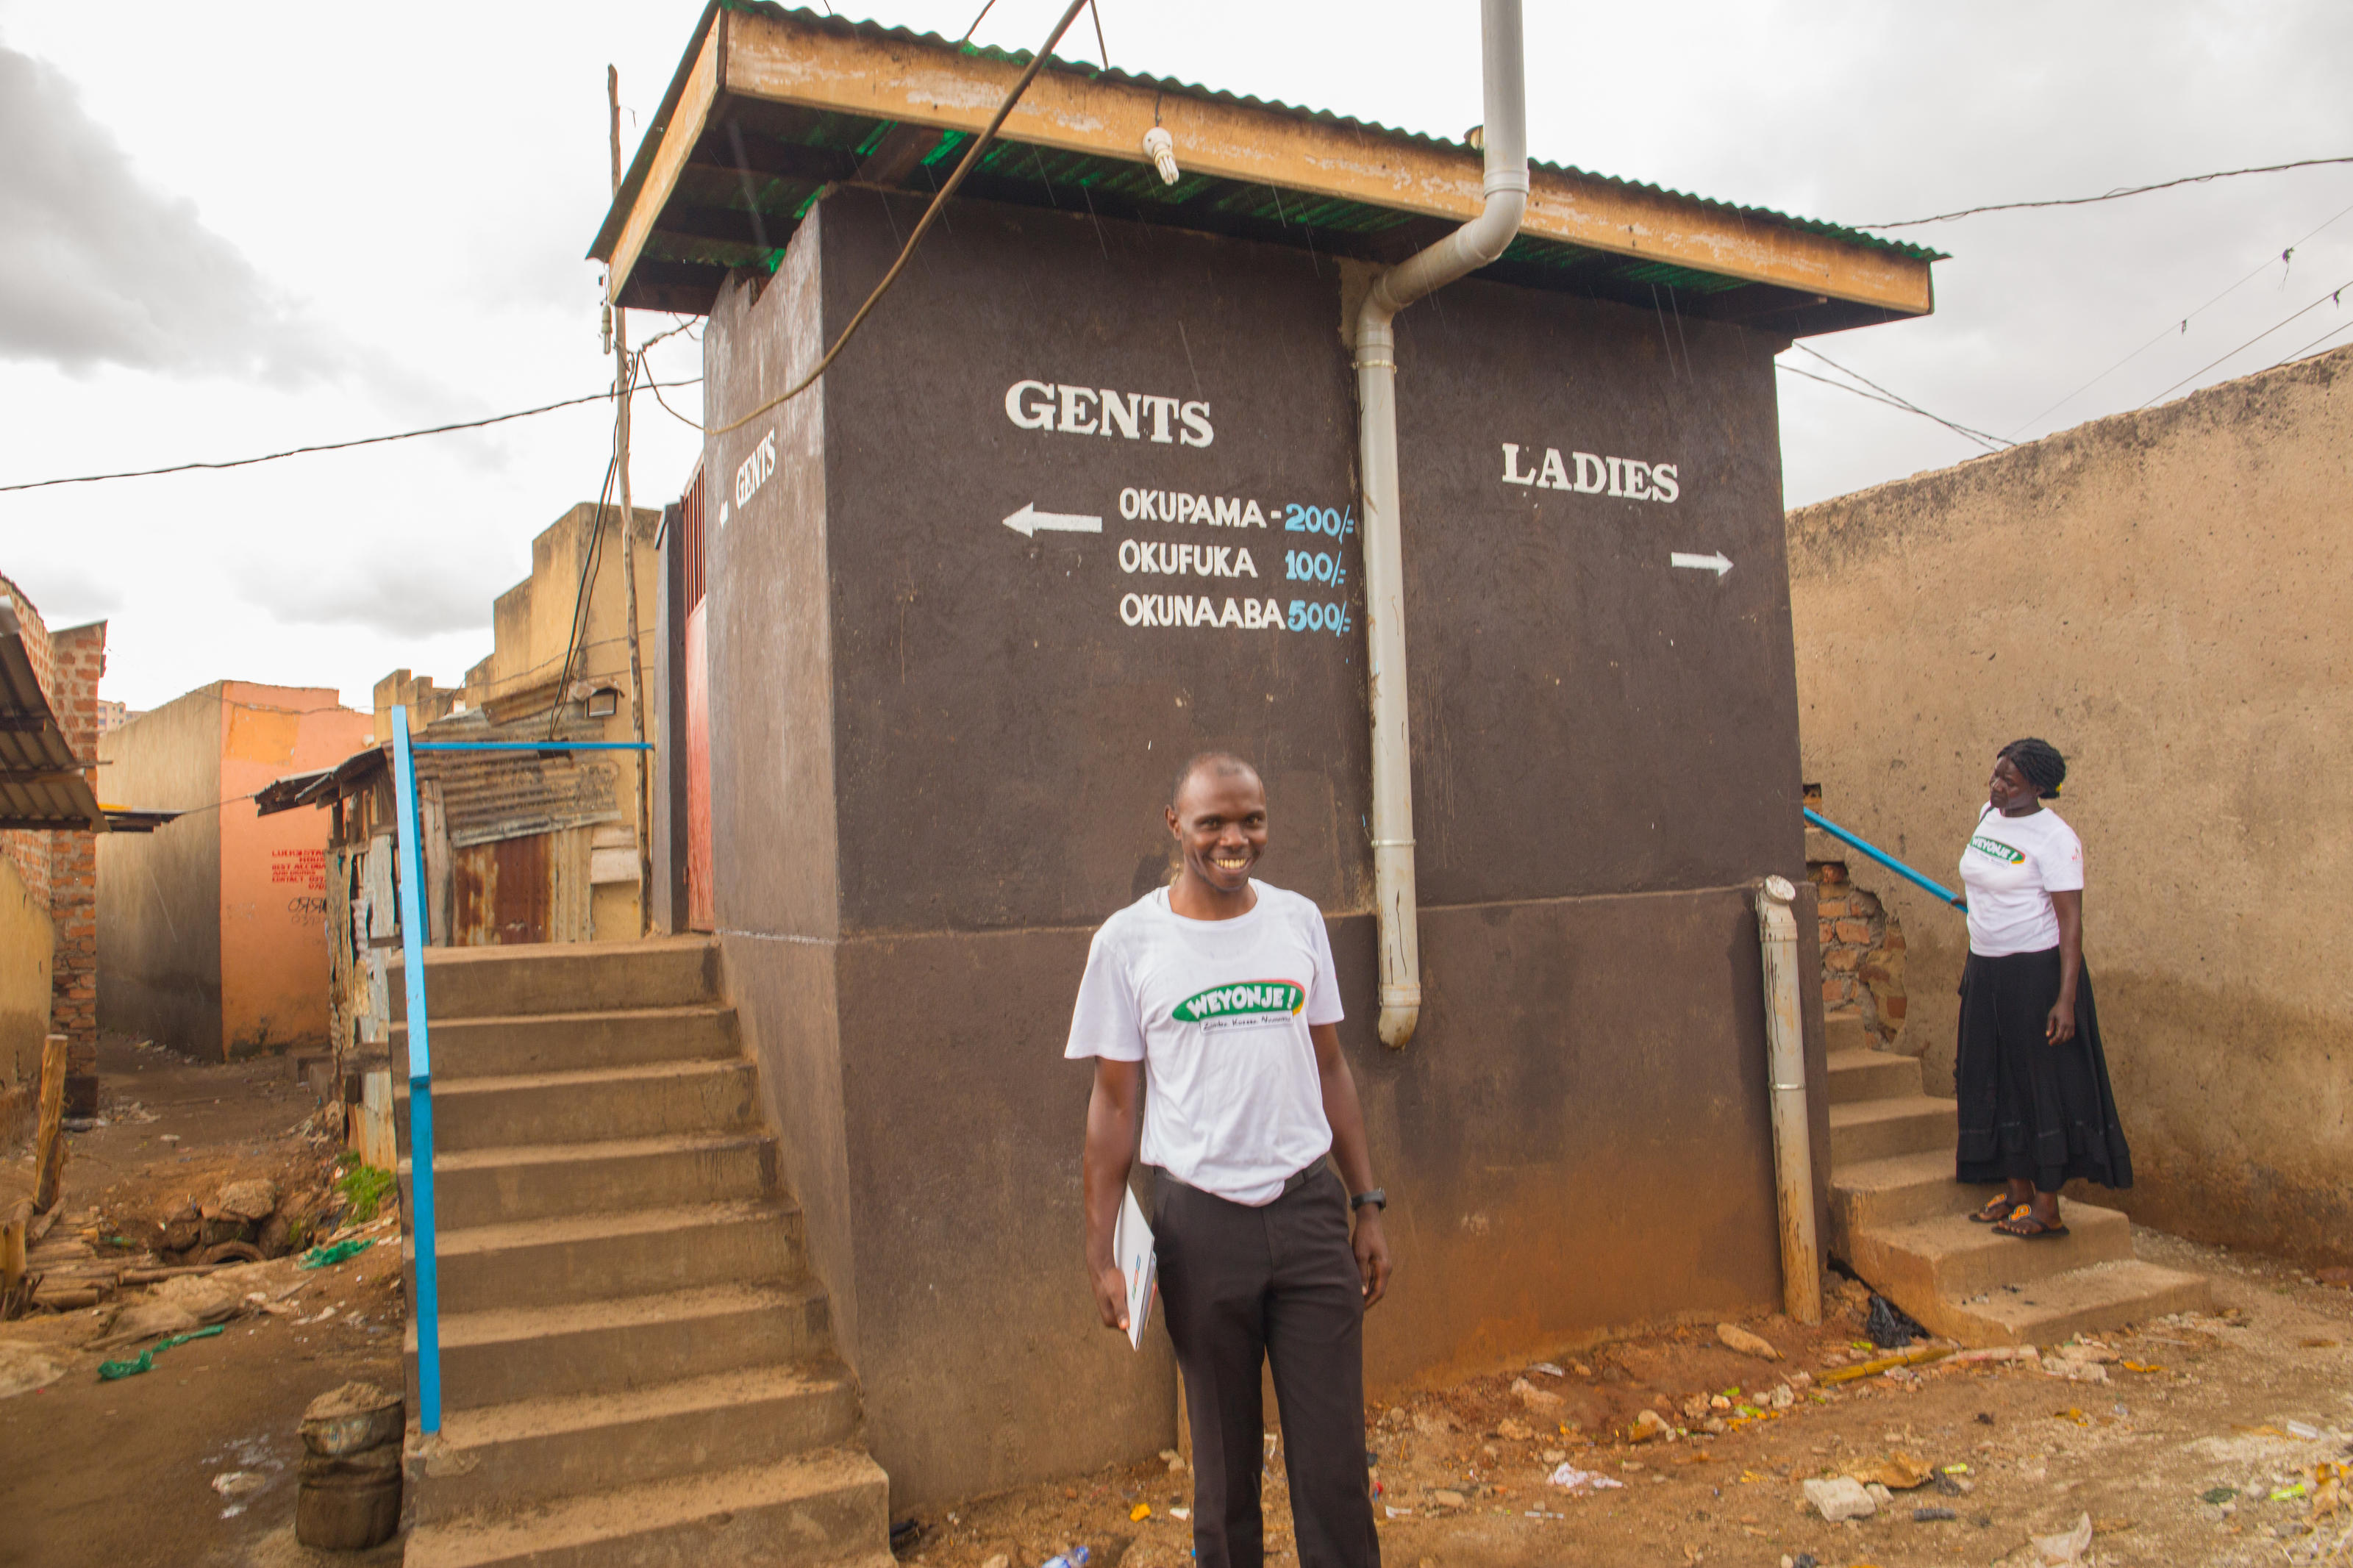 Christopher Tumwine, 31, a member of the Kamwokya Community Action Team on WASH, inspecting a toilet that has been recently constructed by a landlord during a house to house WASH monitoring exercise, Kamwokya II Ward, Kampala City, Uganda, December 2018.